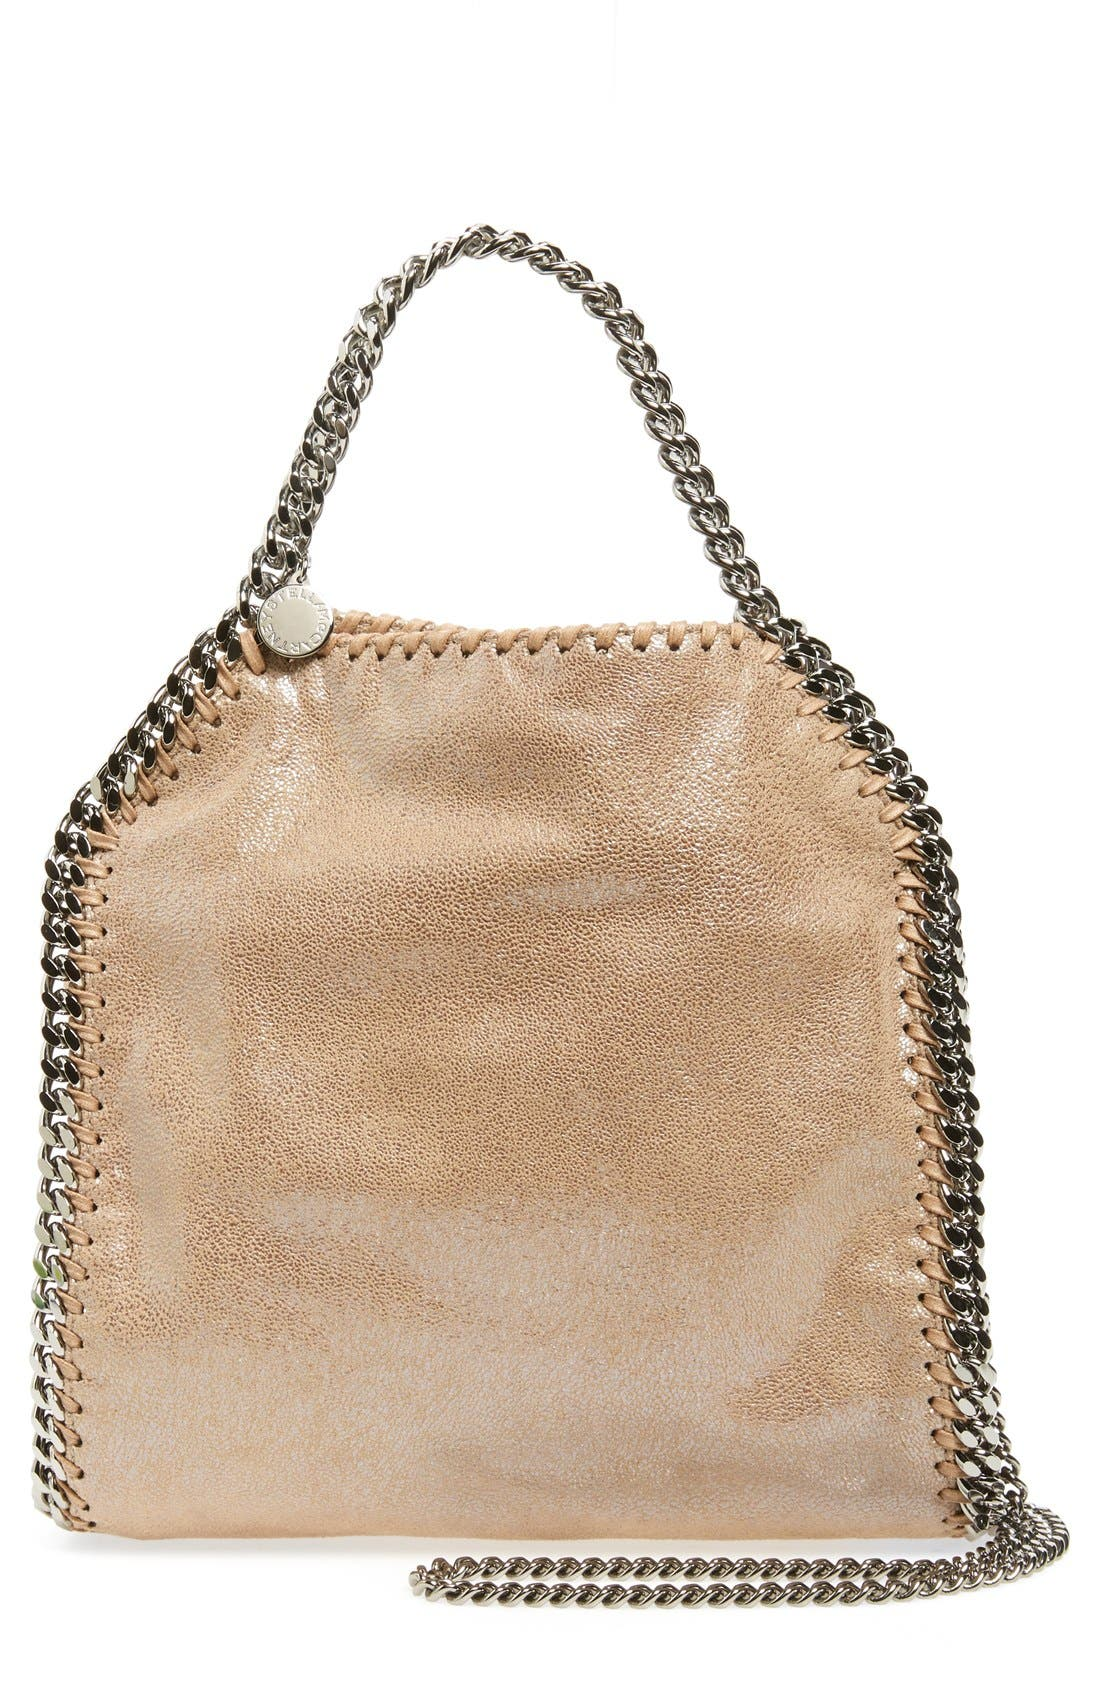 STELLA MCCARTNEY 'Mini Falabella' Faux Leather Crossbody Bag